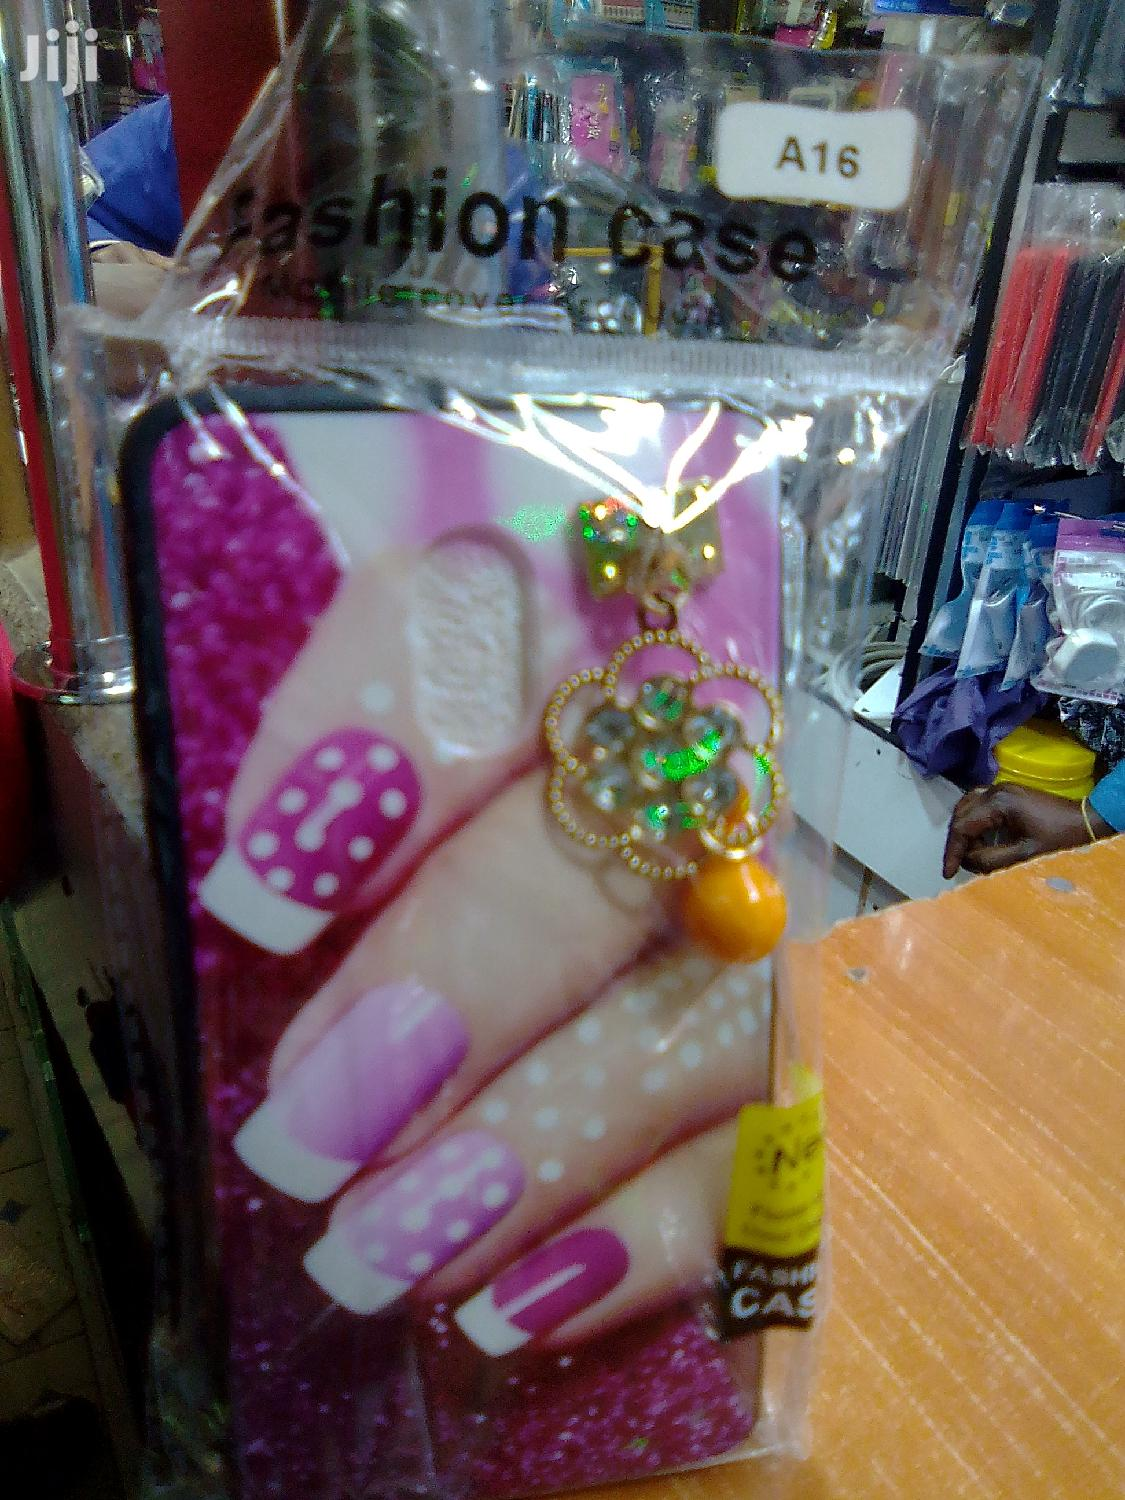 Archive: A16 Mobile Phone Covers